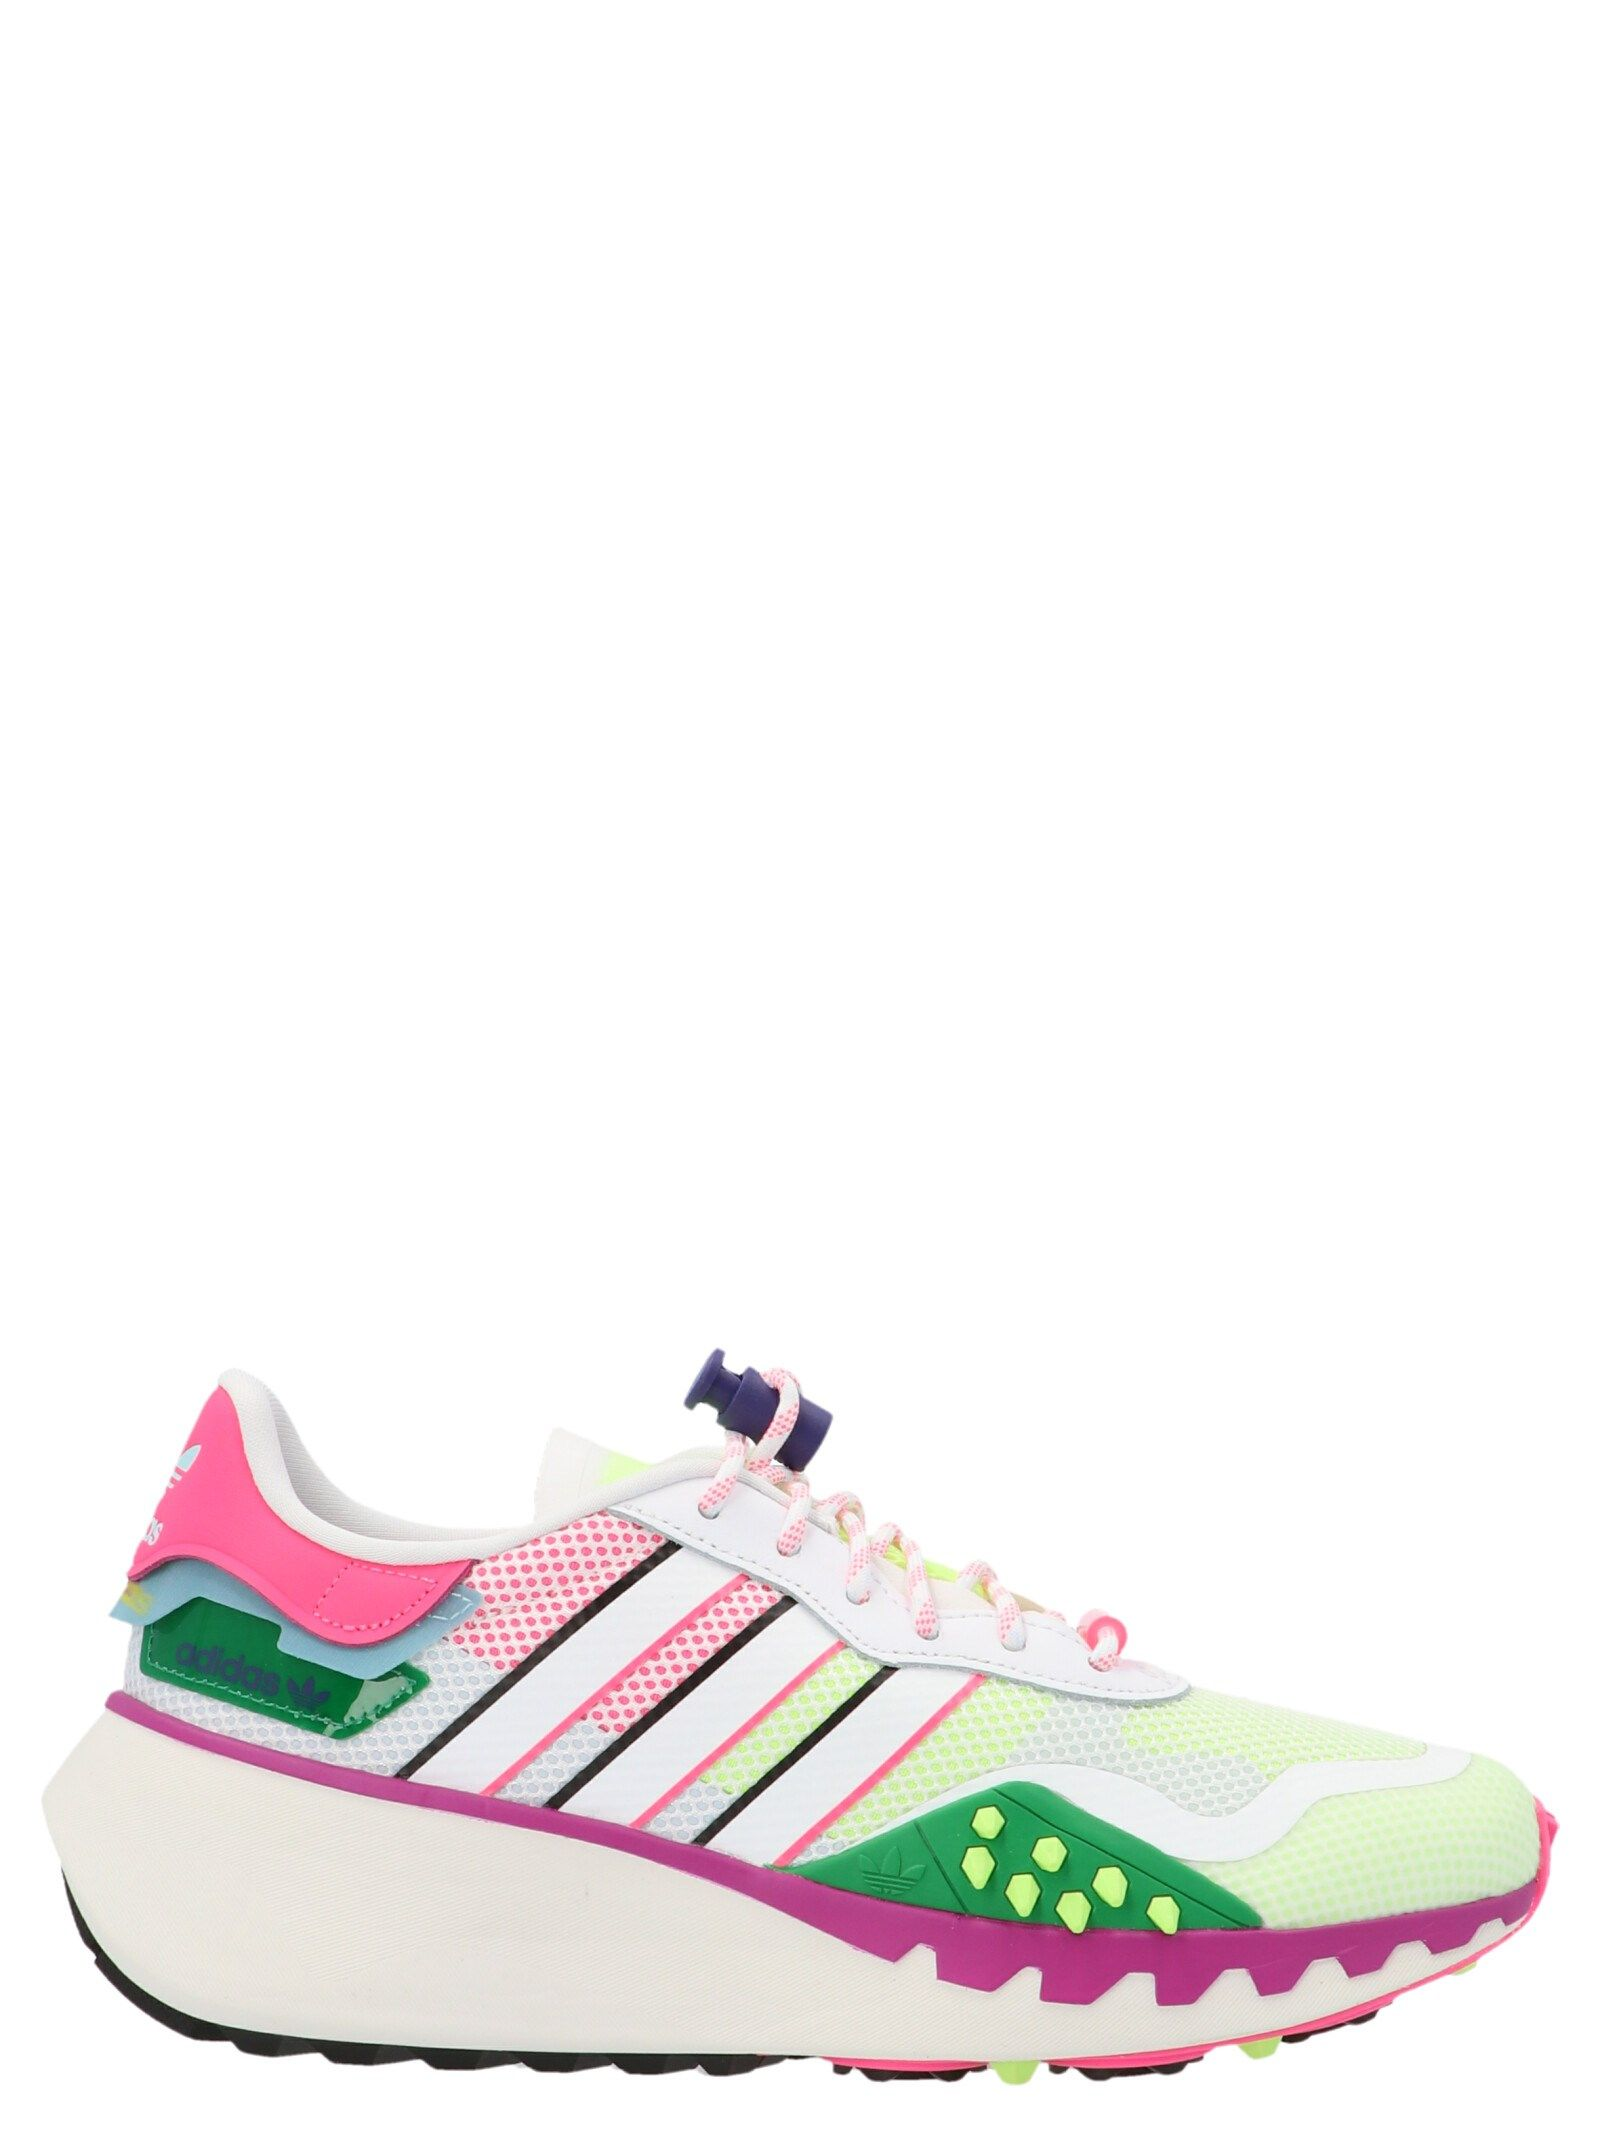 Adidas Originals ADIDAS WOMEN'S MULTICOLOR SYNTHETIC FIBERS SNEAKERS